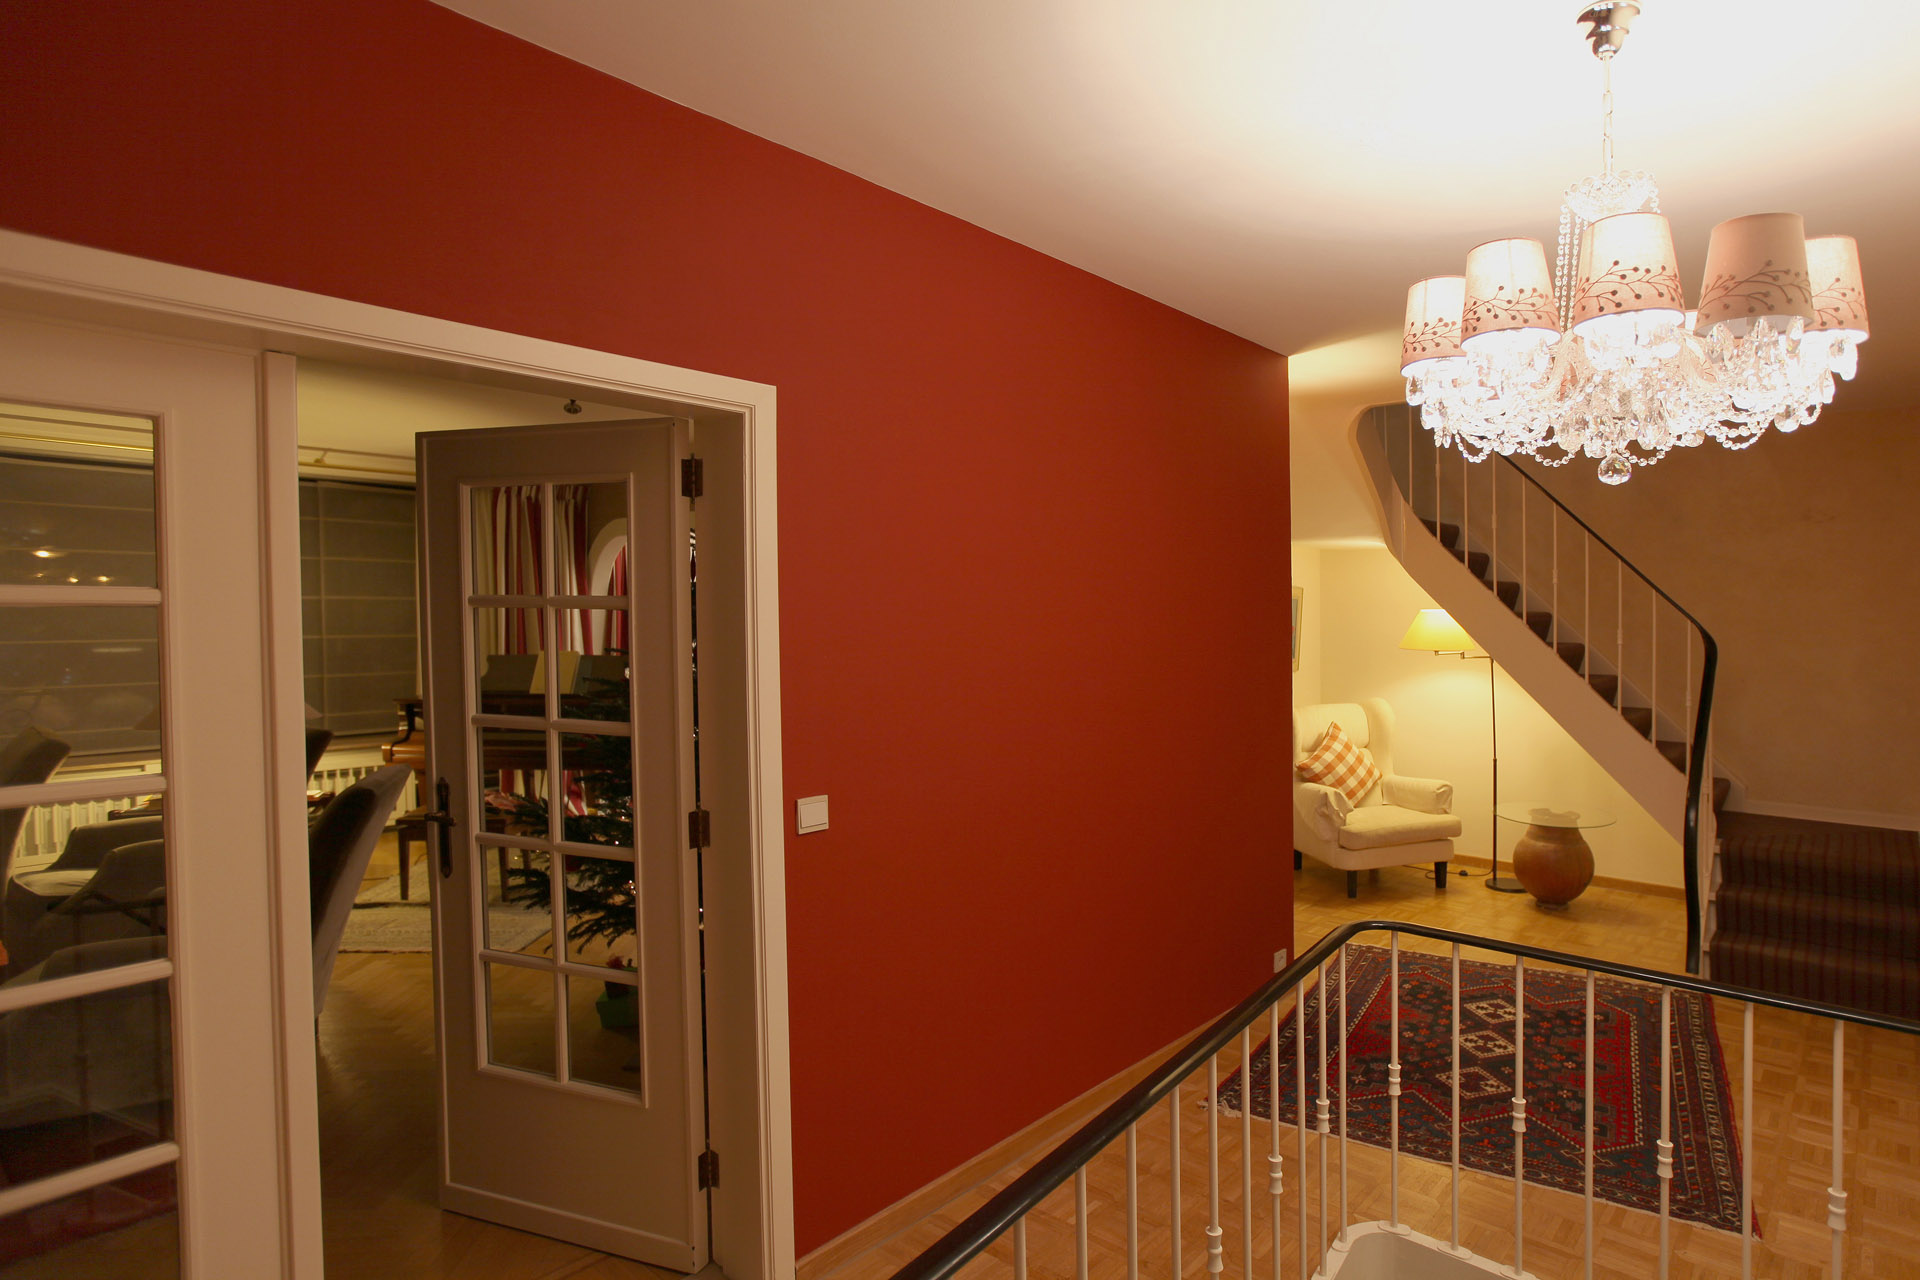 Interior concepts - Marcotte Style